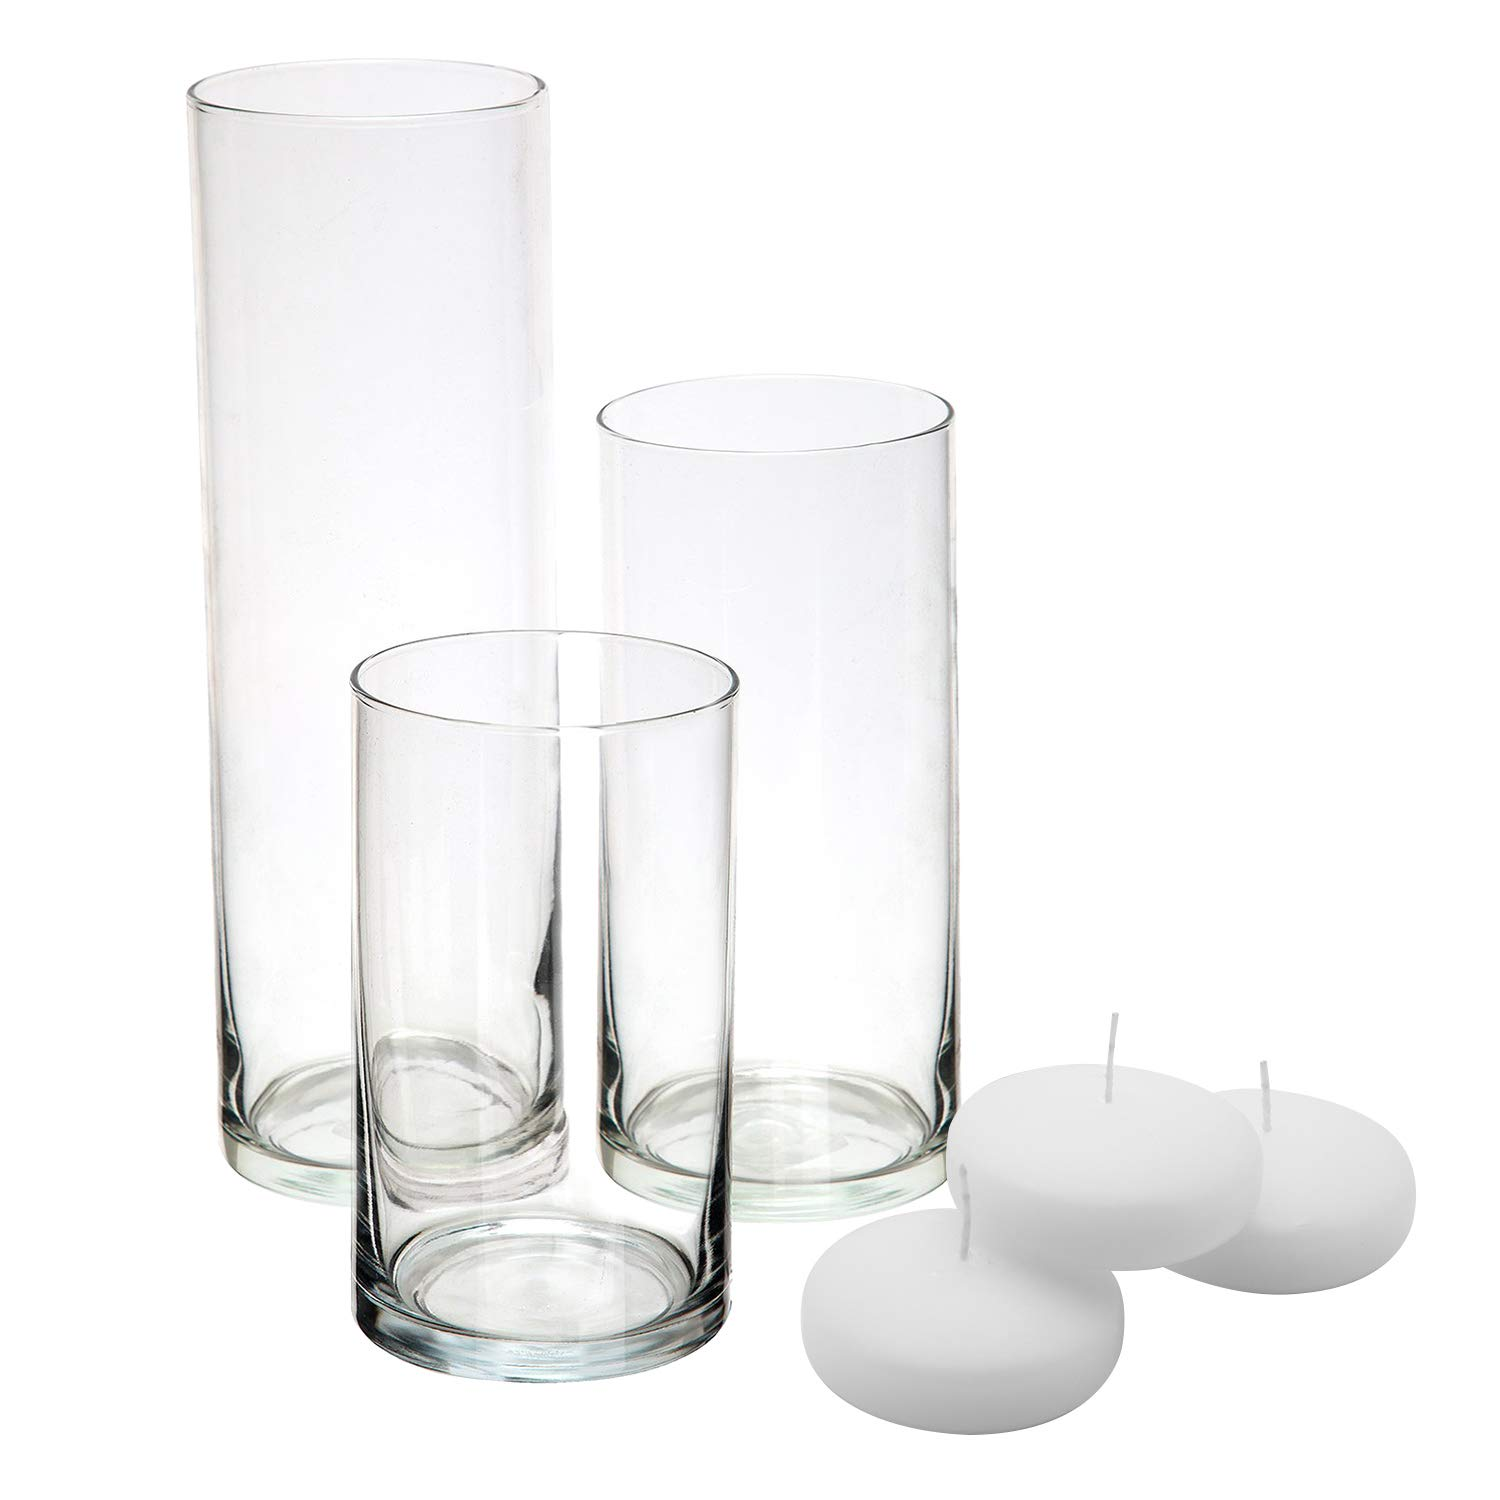 Royal Imports Glass Cylinder Vases - Set of 3 - Including 3 Floating DISC Candles, Decorative Centerpieces for Home or Wedding